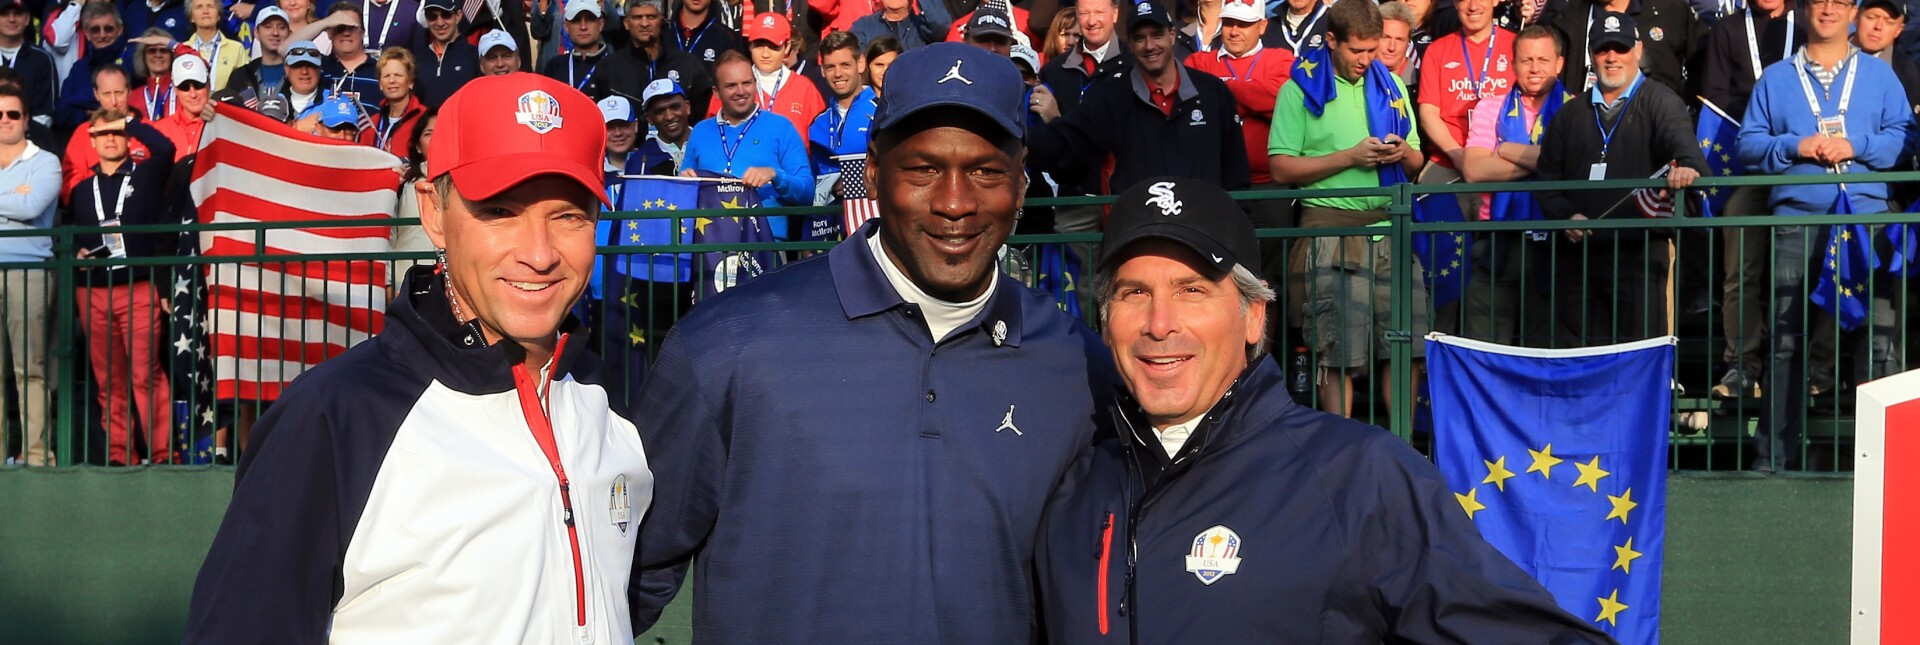 Davis Love III, Michael Jordan and Fred Couples at the Ryder Cup